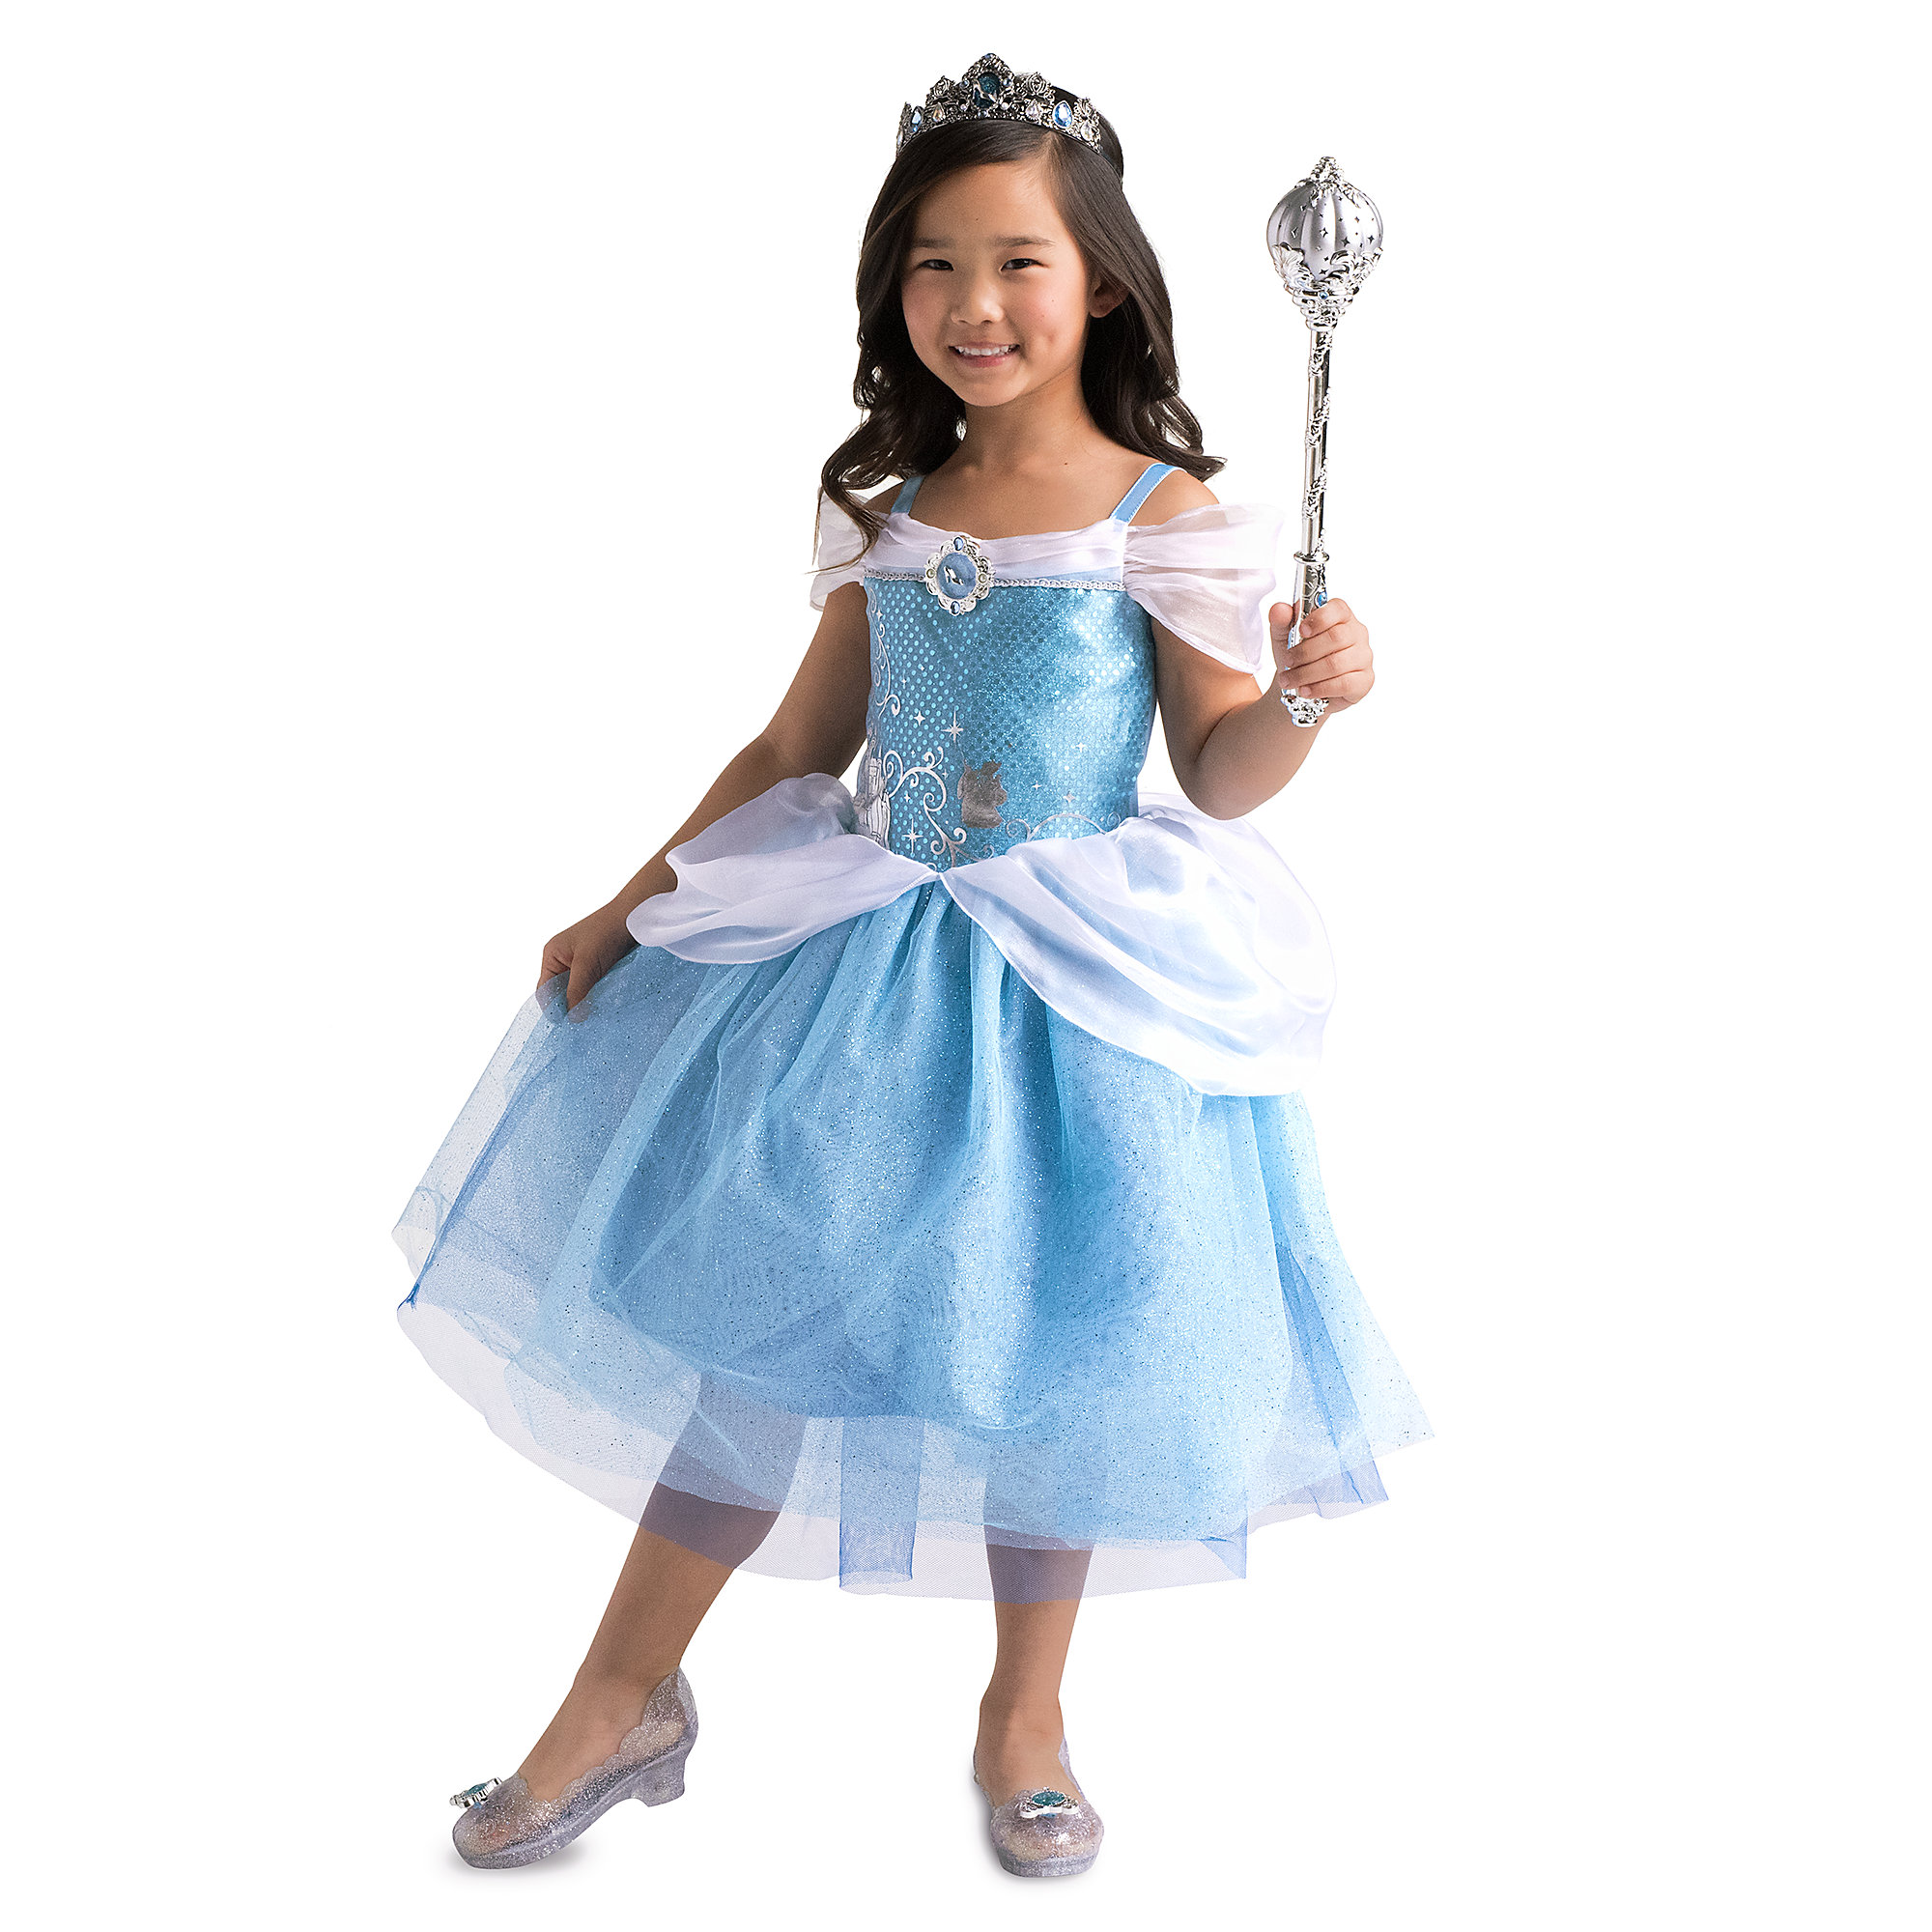 Thumbnail Image of Cinderella Costume for Kids # 2  sc 1 st  shopDisney & Cinderella Costume for Kids | shopDisney